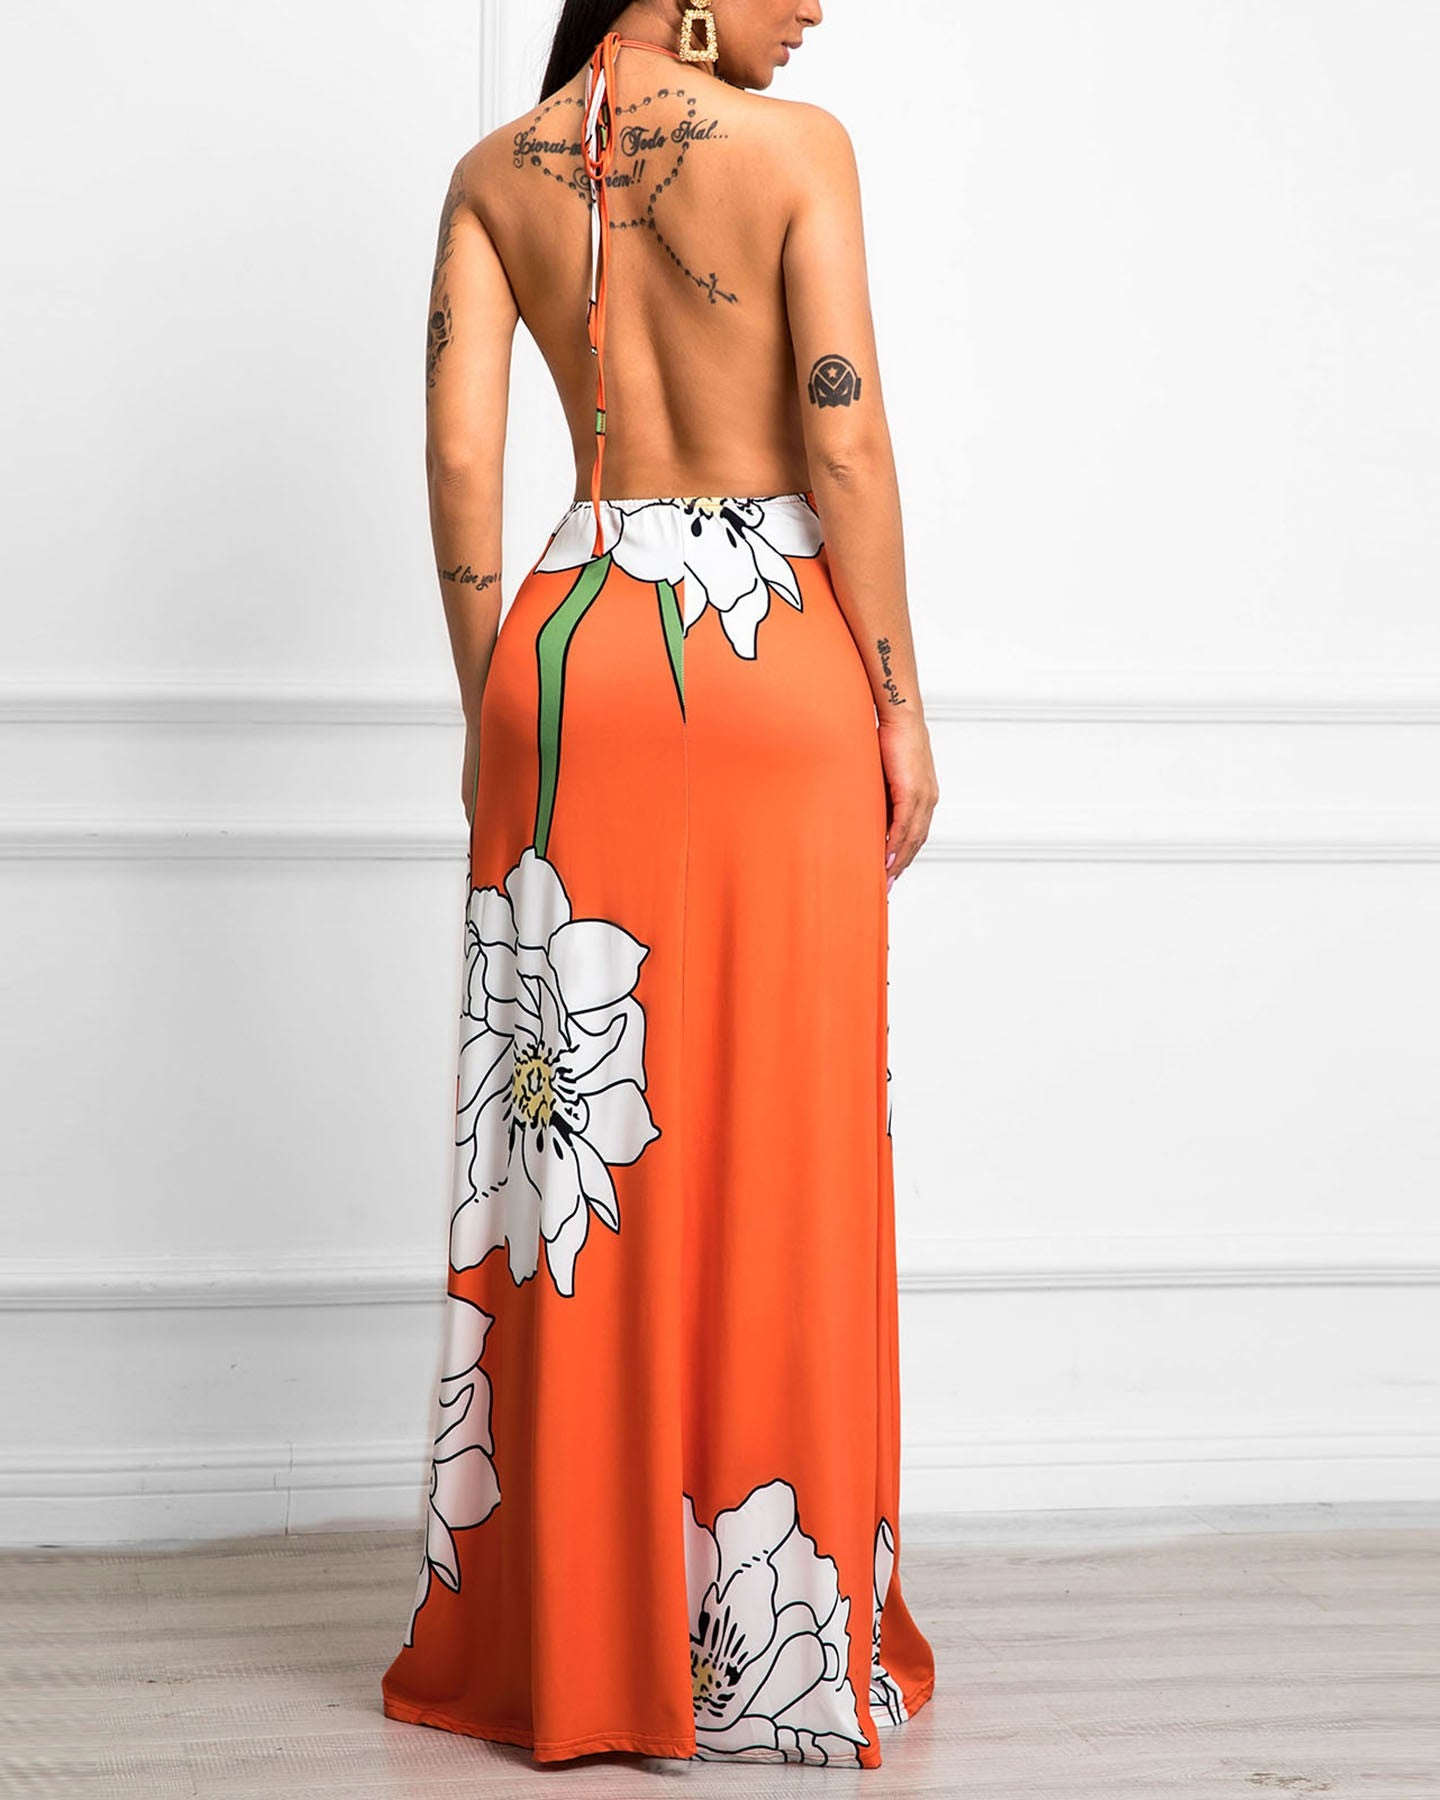 Floral Print Open Back Halter Maxi Dress - DadHats2ow6ix